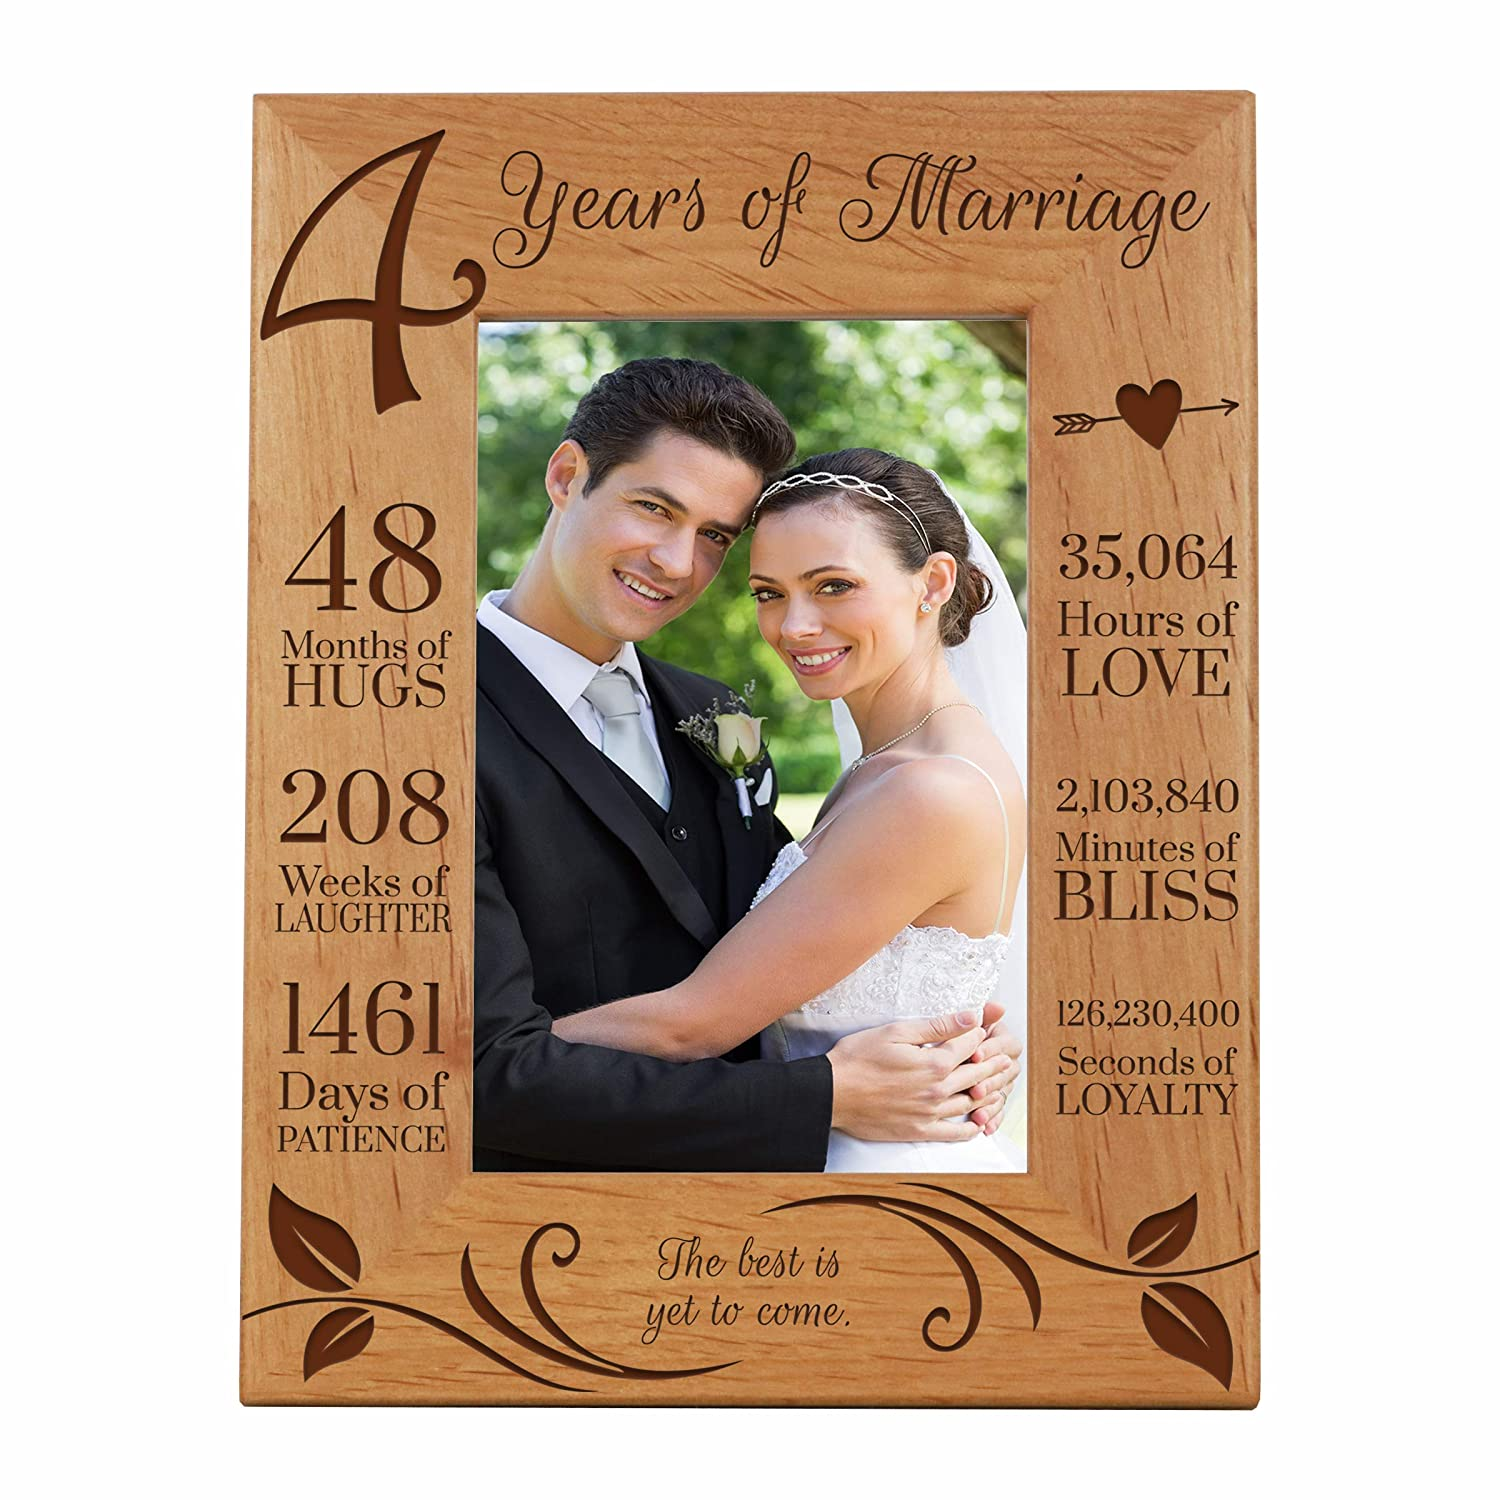 6 5x8 5 Lifesong Milestones 4th Anniversary Picture Frame 4 Year Of Marriage Four Year Wedding